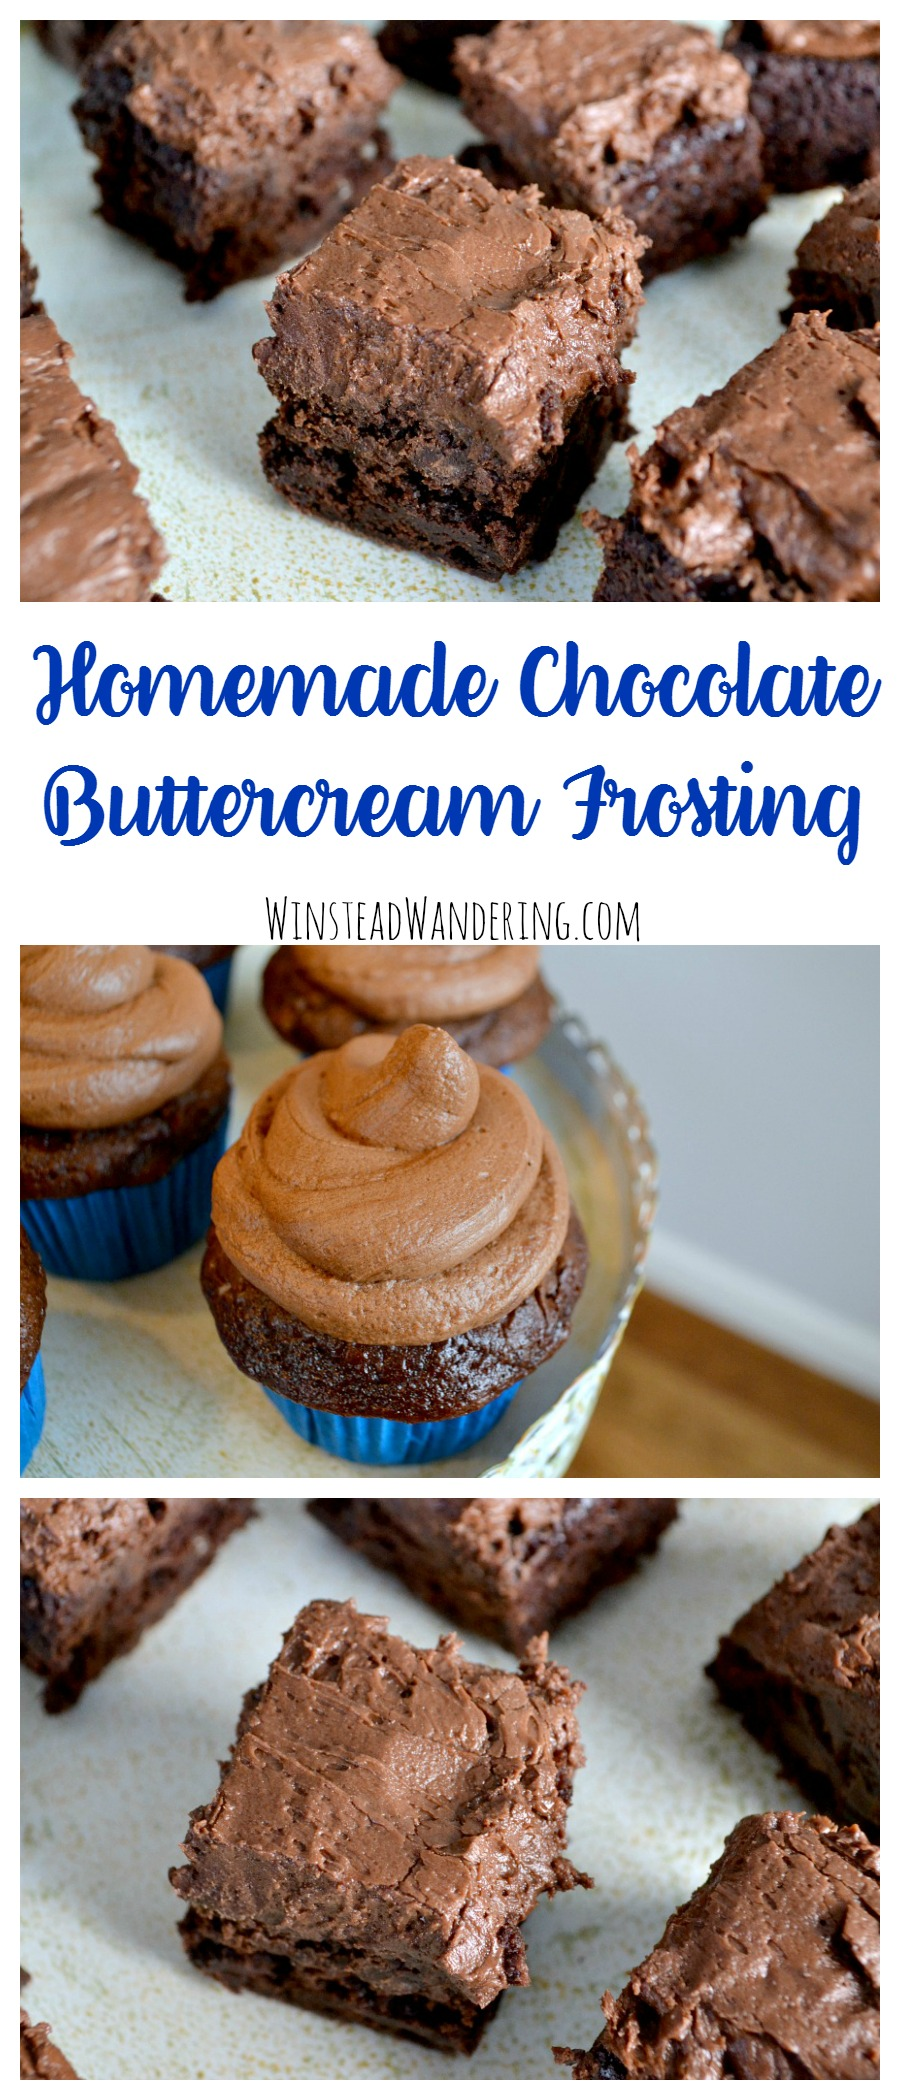 Put the store-bought stuff down; homemade chocolate buttercream frosting is surprisingly easy and tastes 100 times better than those other options.